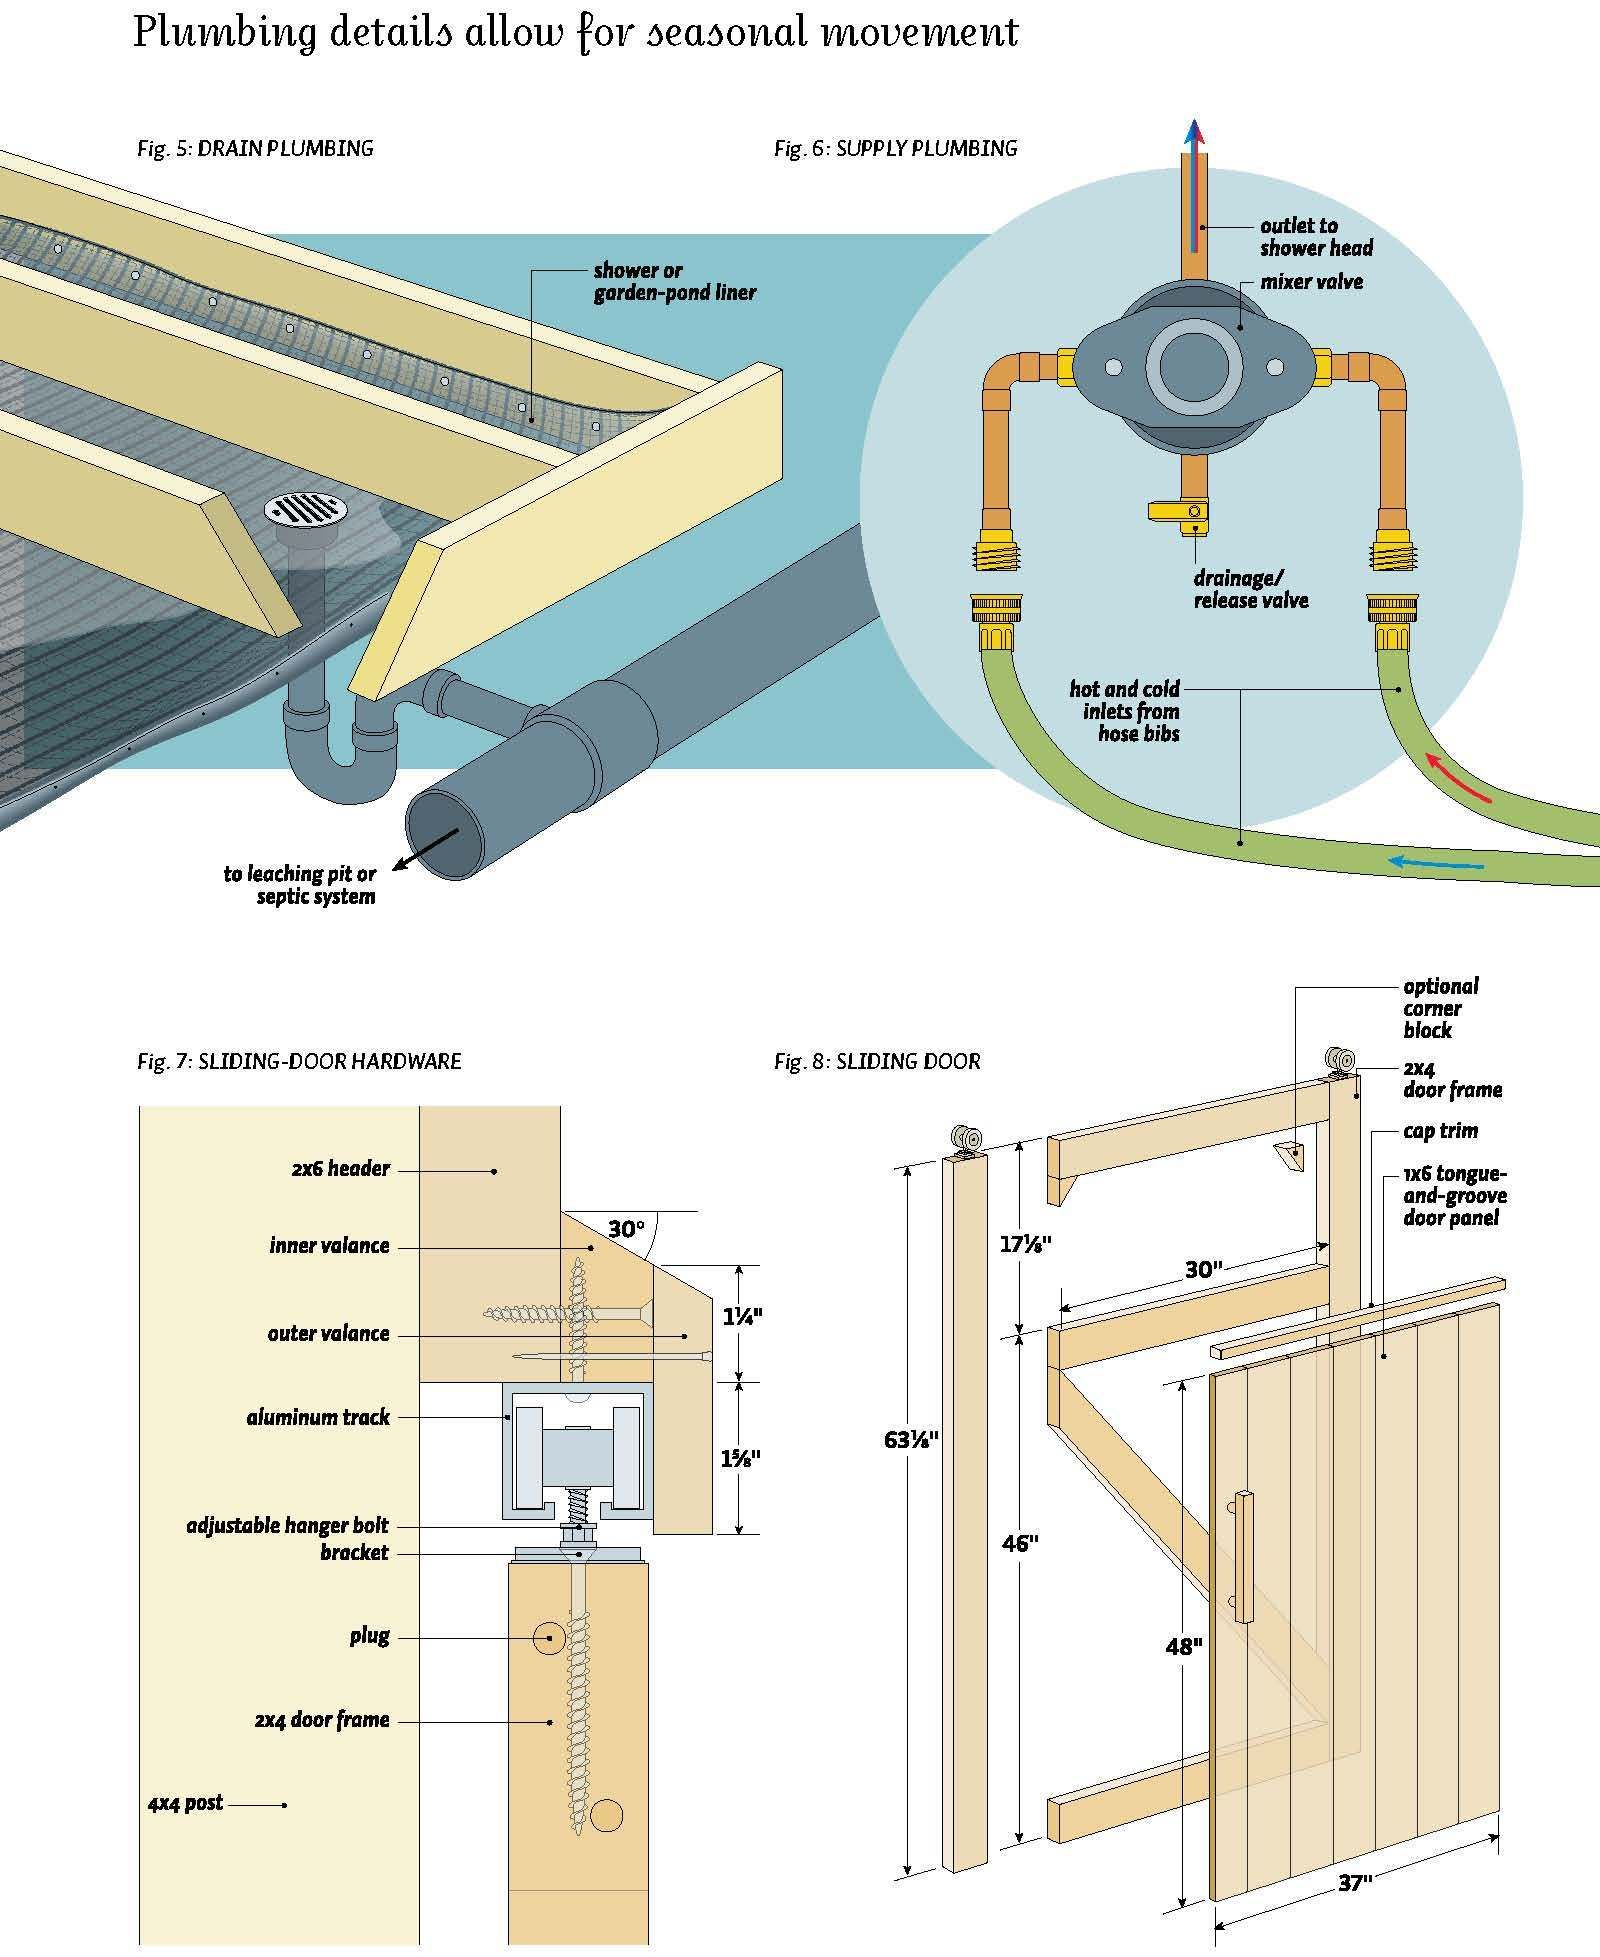 free outdoor shower wood plans - How To Build An Outdoor Shower